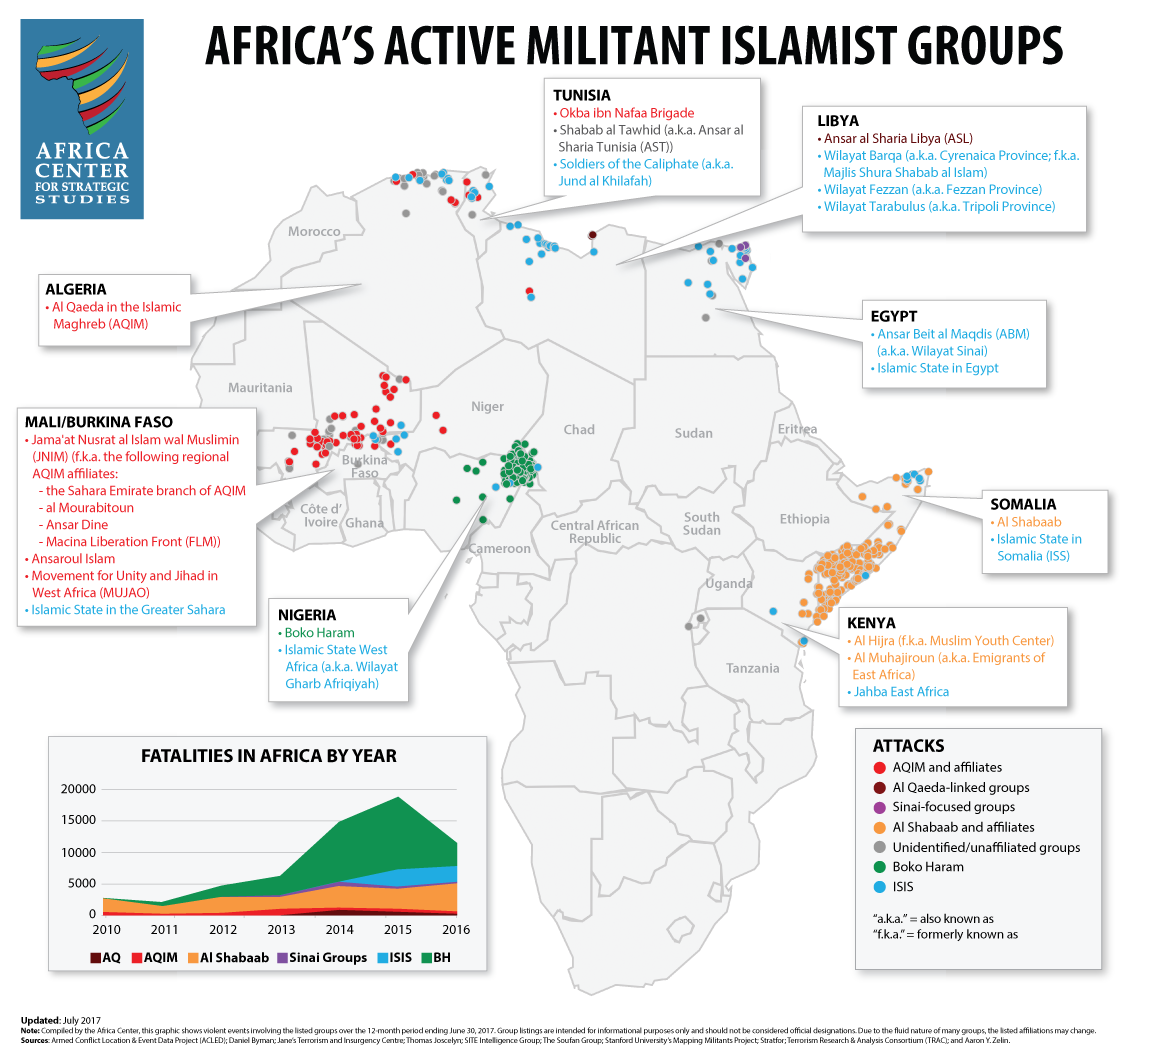 Africa's Militant Islamic Groups as of June 2017